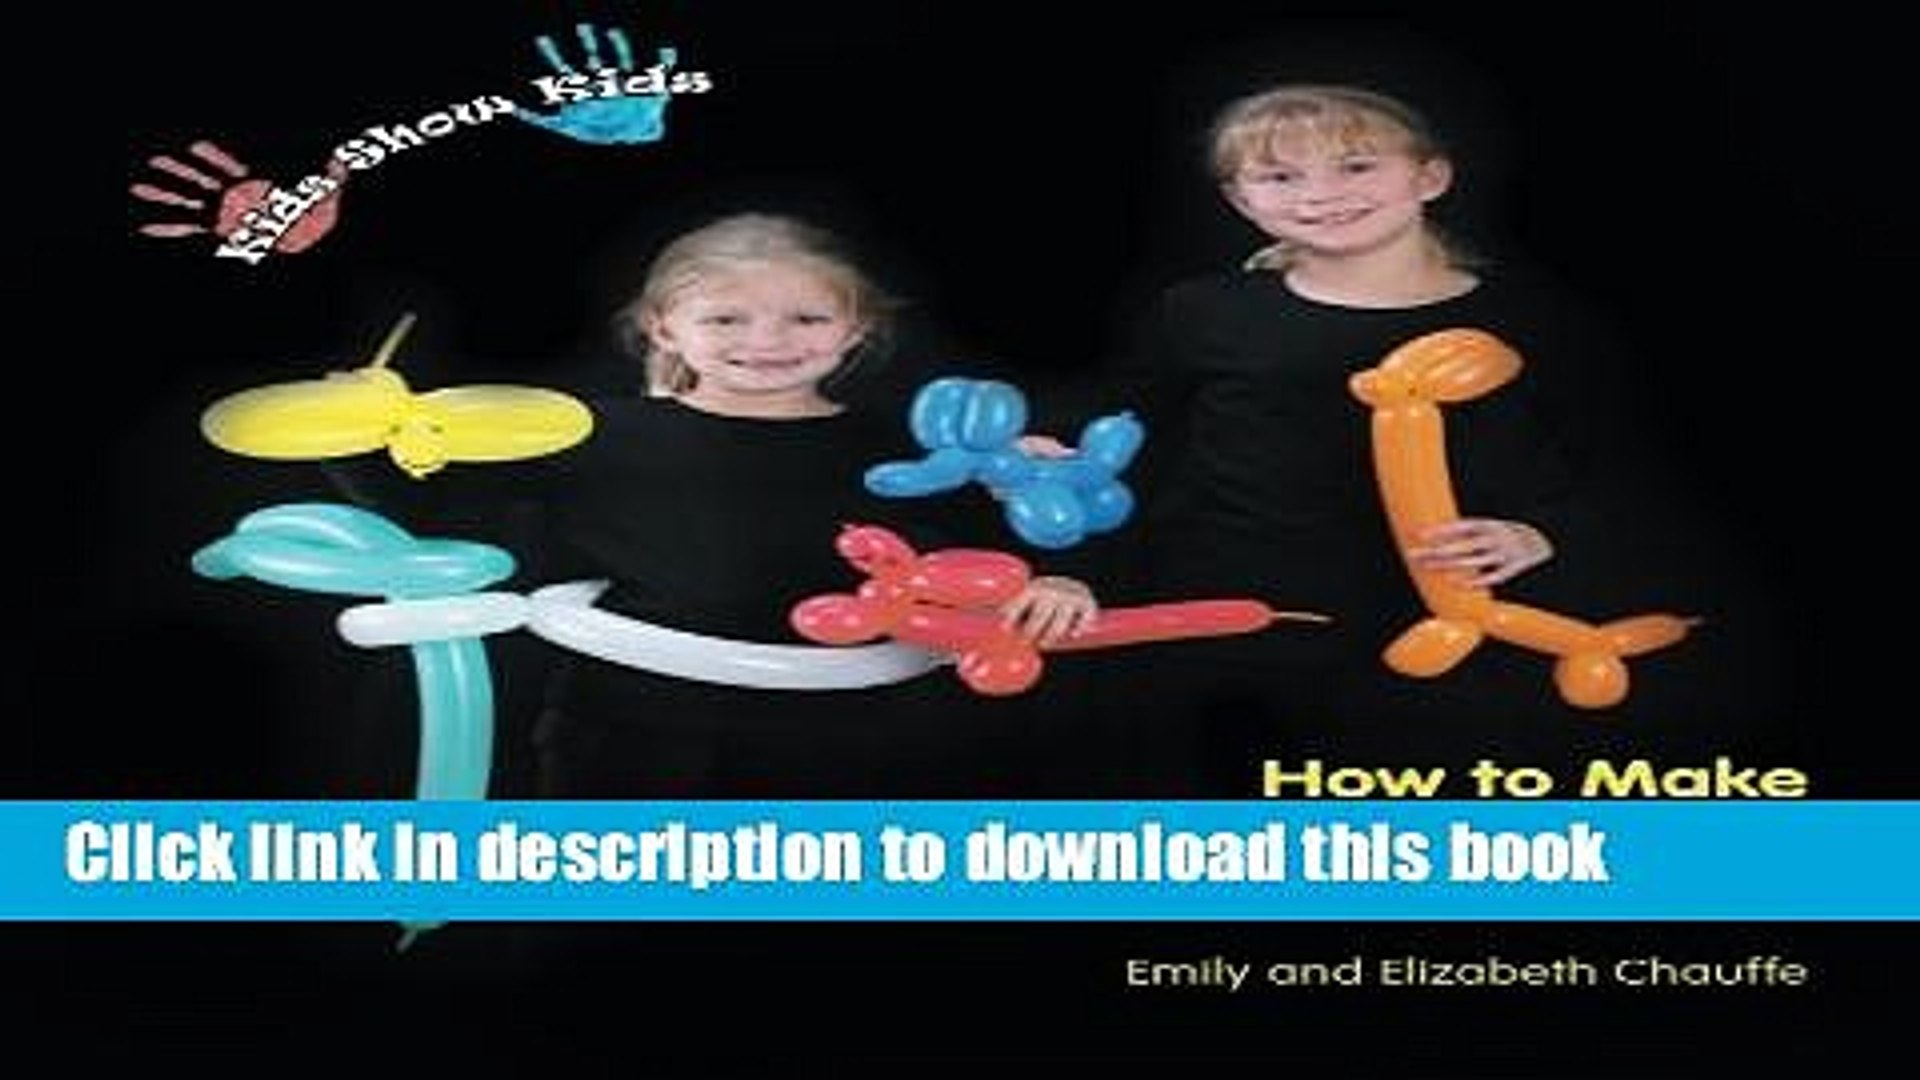 [Download] Kids Show Kids How to Make Balloon Animals Hardcover Free